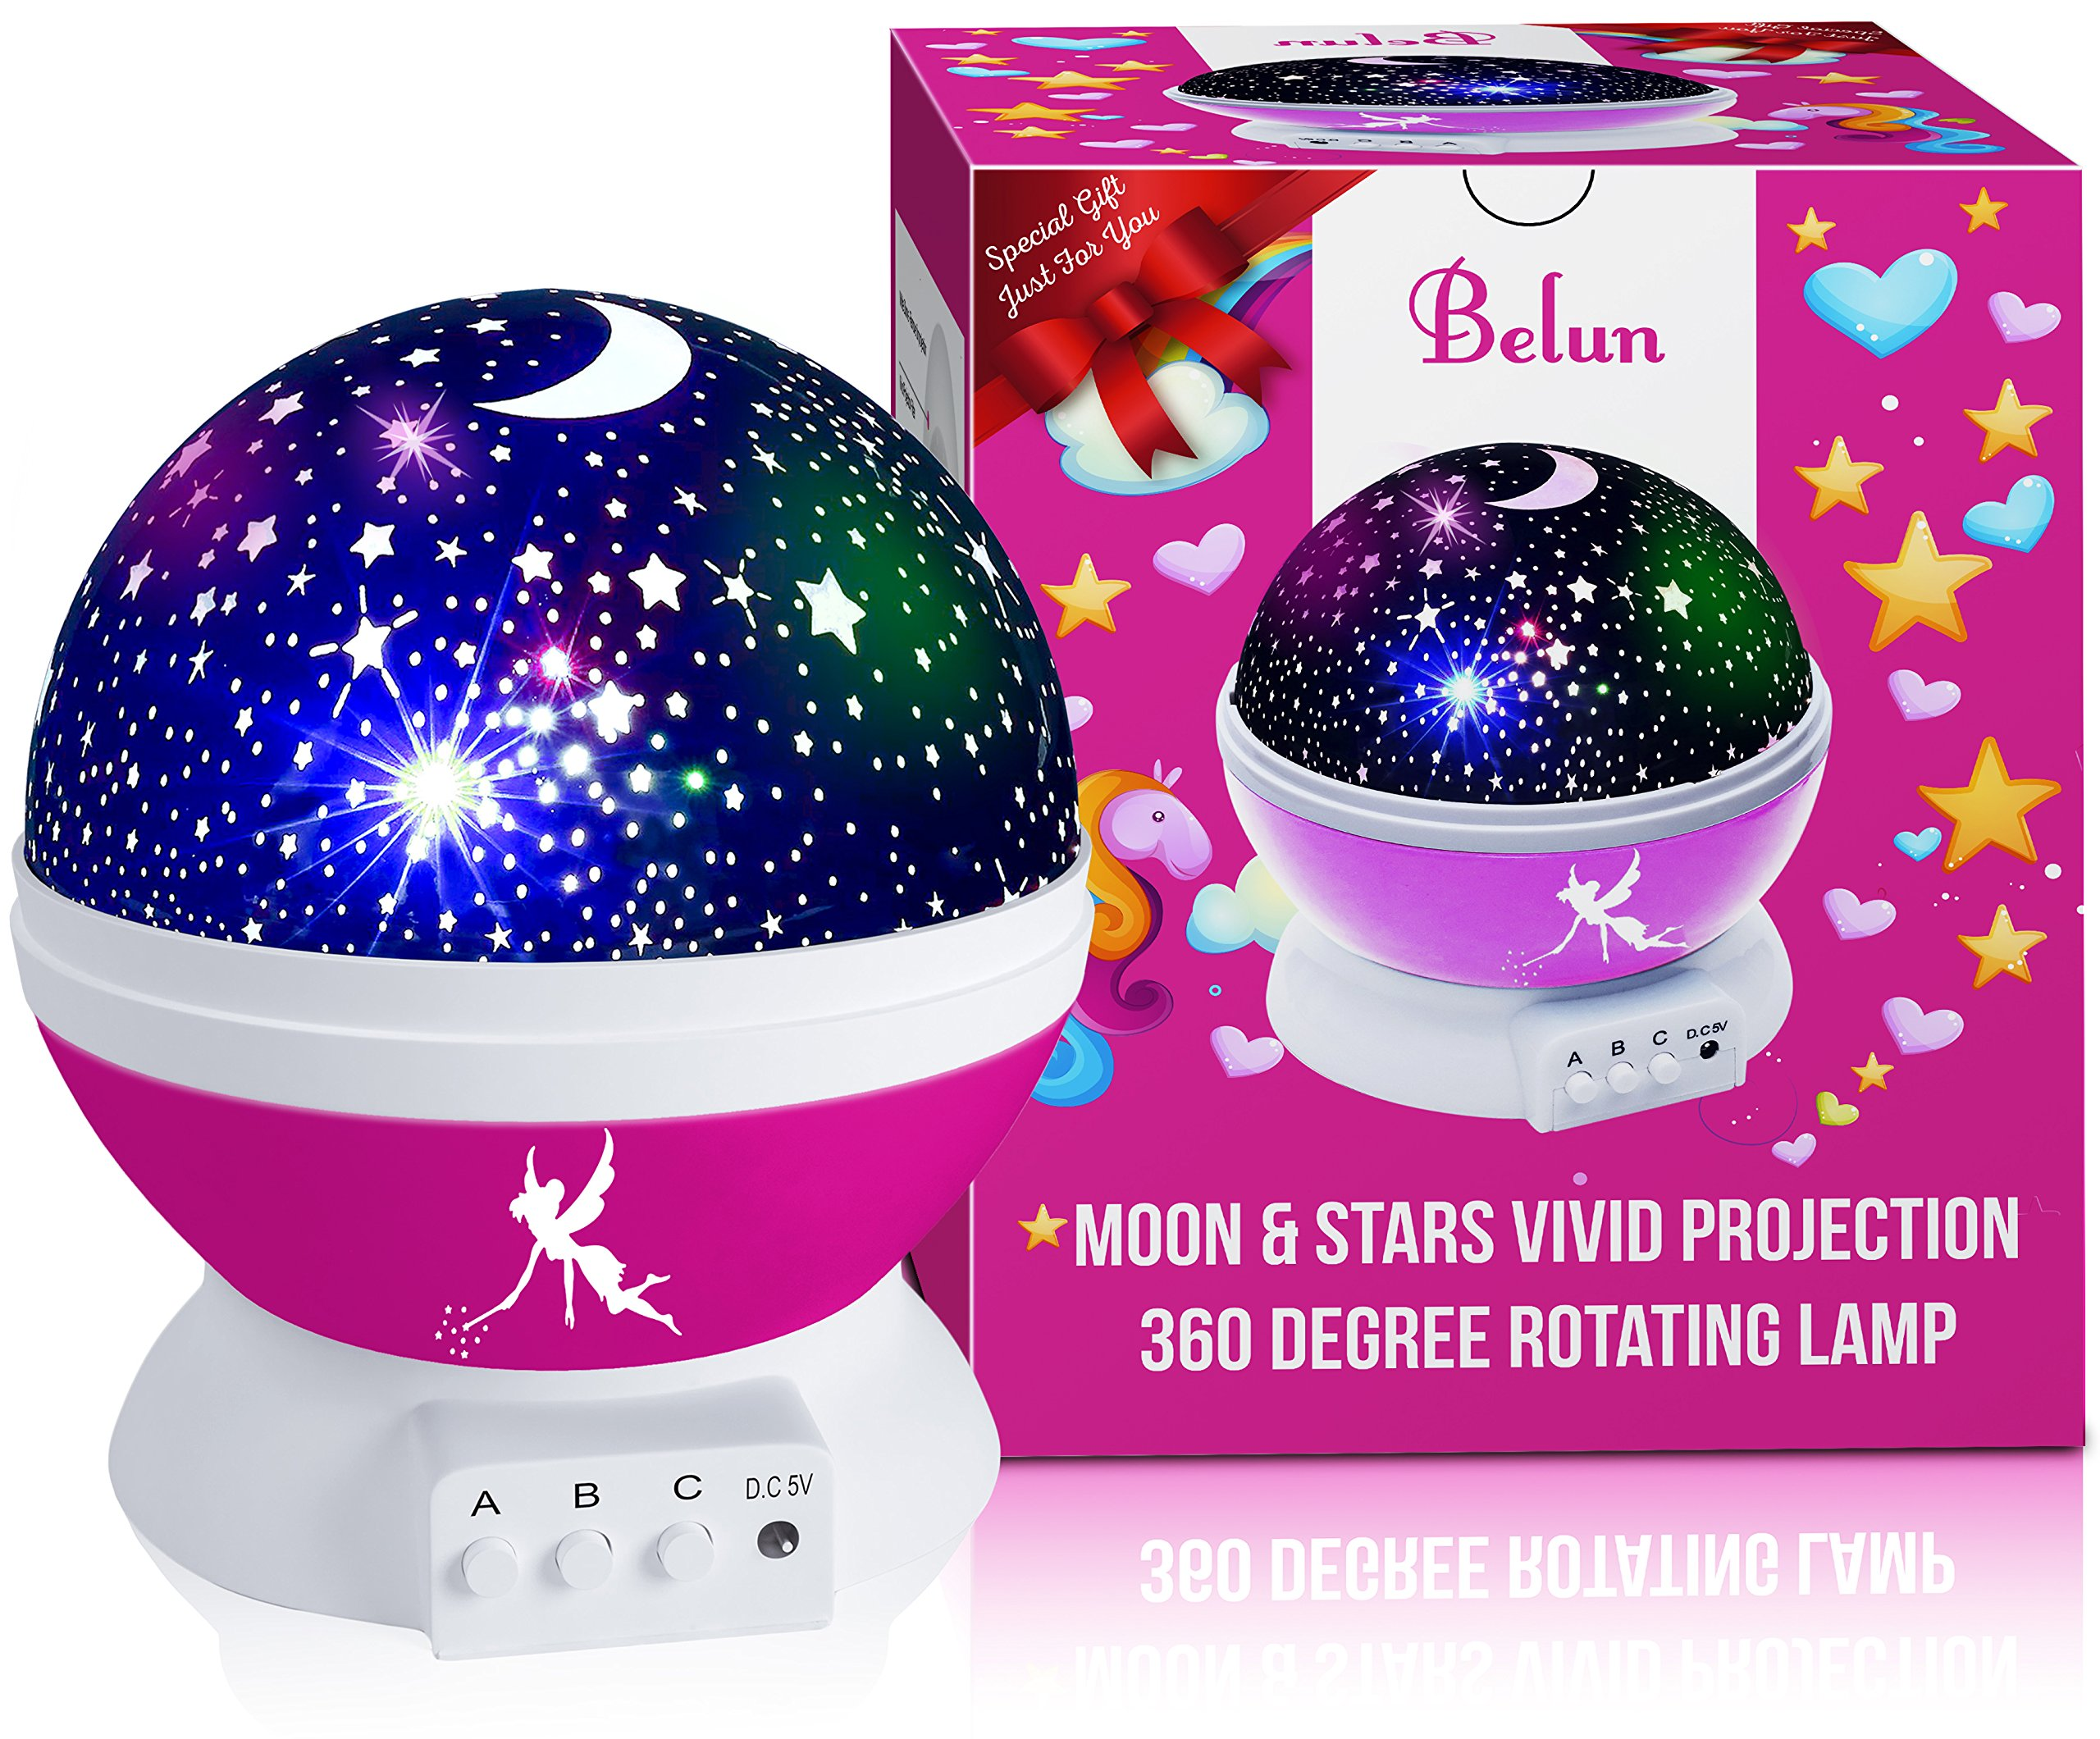 Kids Night Light for Girls, Boys, Babies, Toddlers, 4 LED Bulbs Moon Star Projector Night Light Lamp for Kids Bedroom, Nursery -Bonus Wall Charger, 4.9 ft USB Cable, Best Gift Idea Ever (Pink)